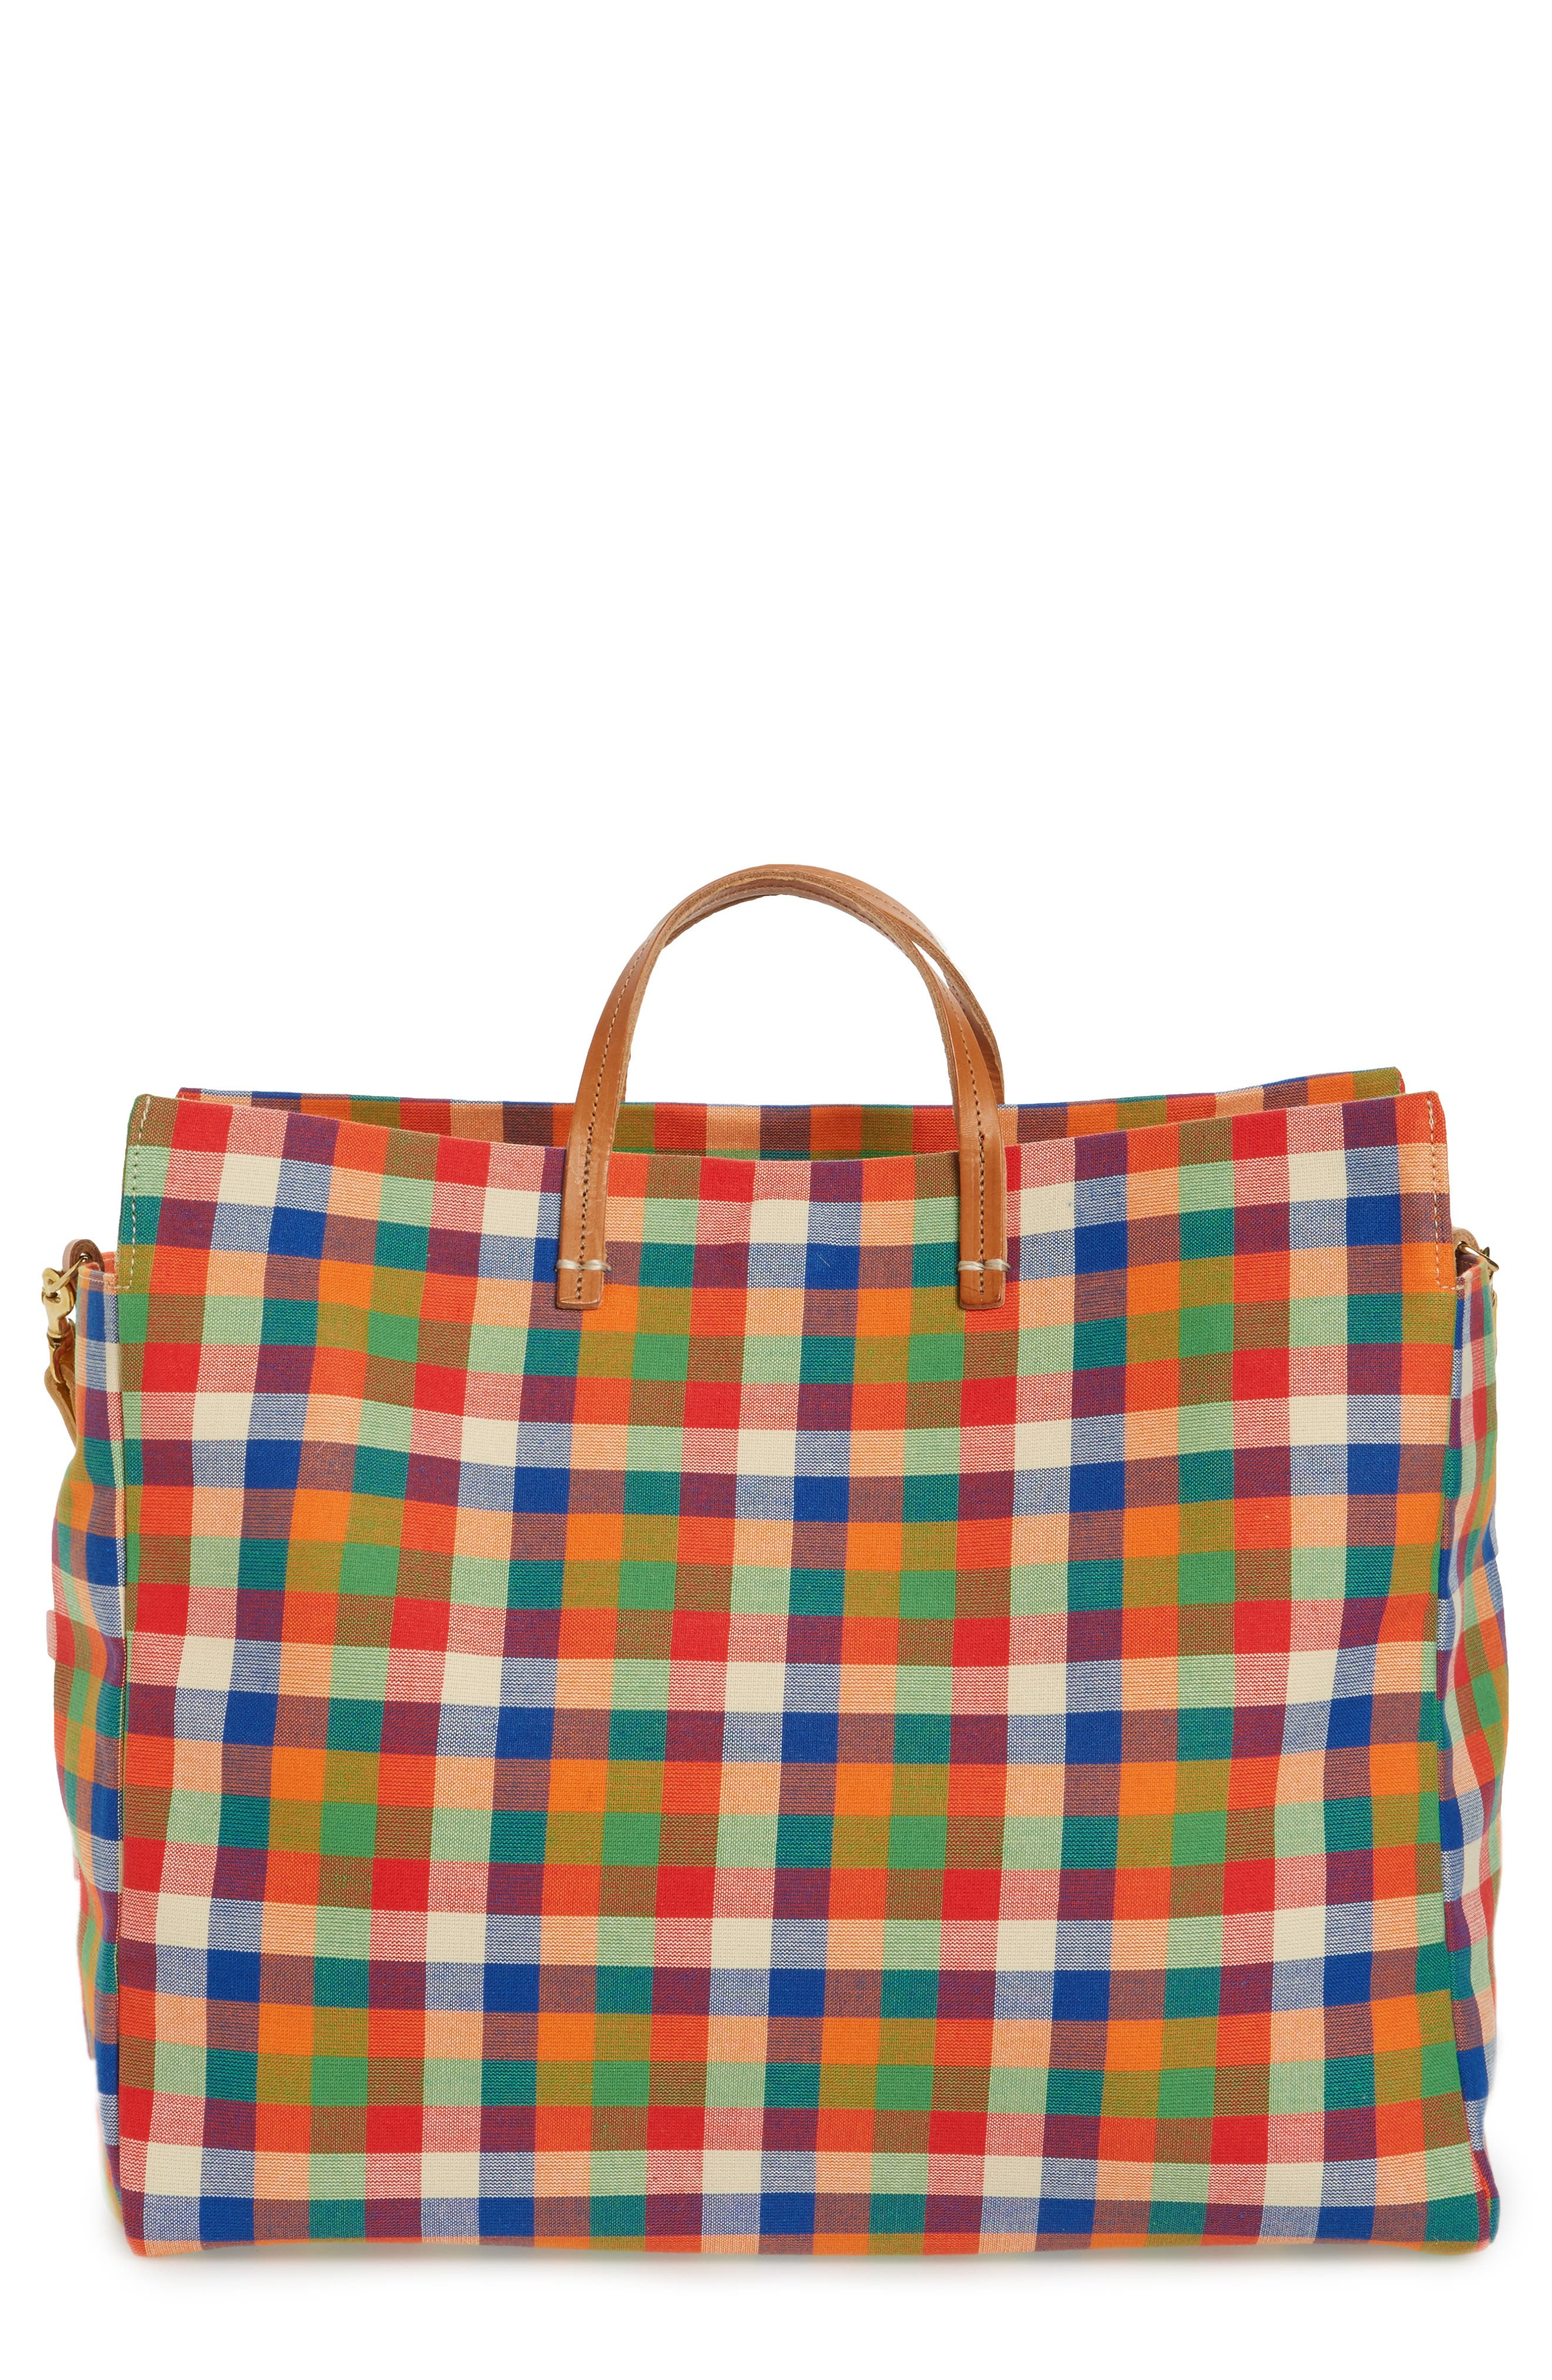 Clare V. Simple Plaid Canvas Tote